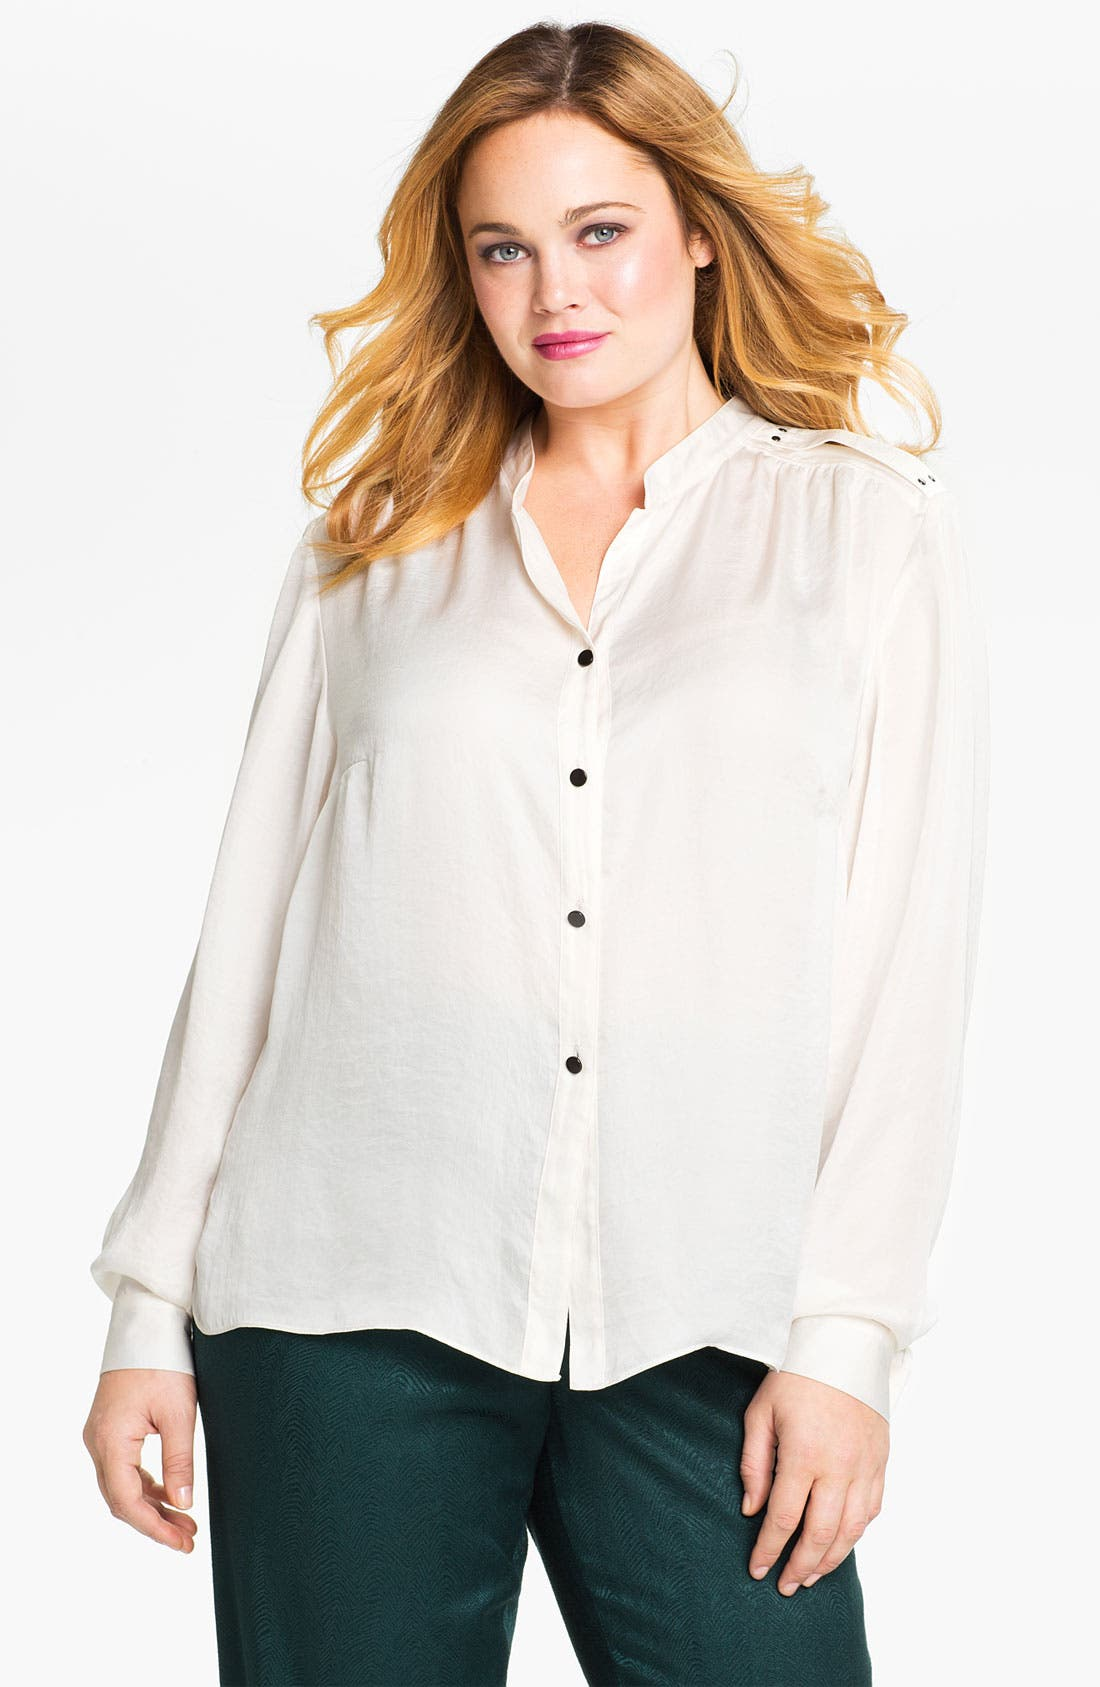 Alternate Image 1 Selected - Kenneth Cole New York 'Alyssa' Shirt (Plus)